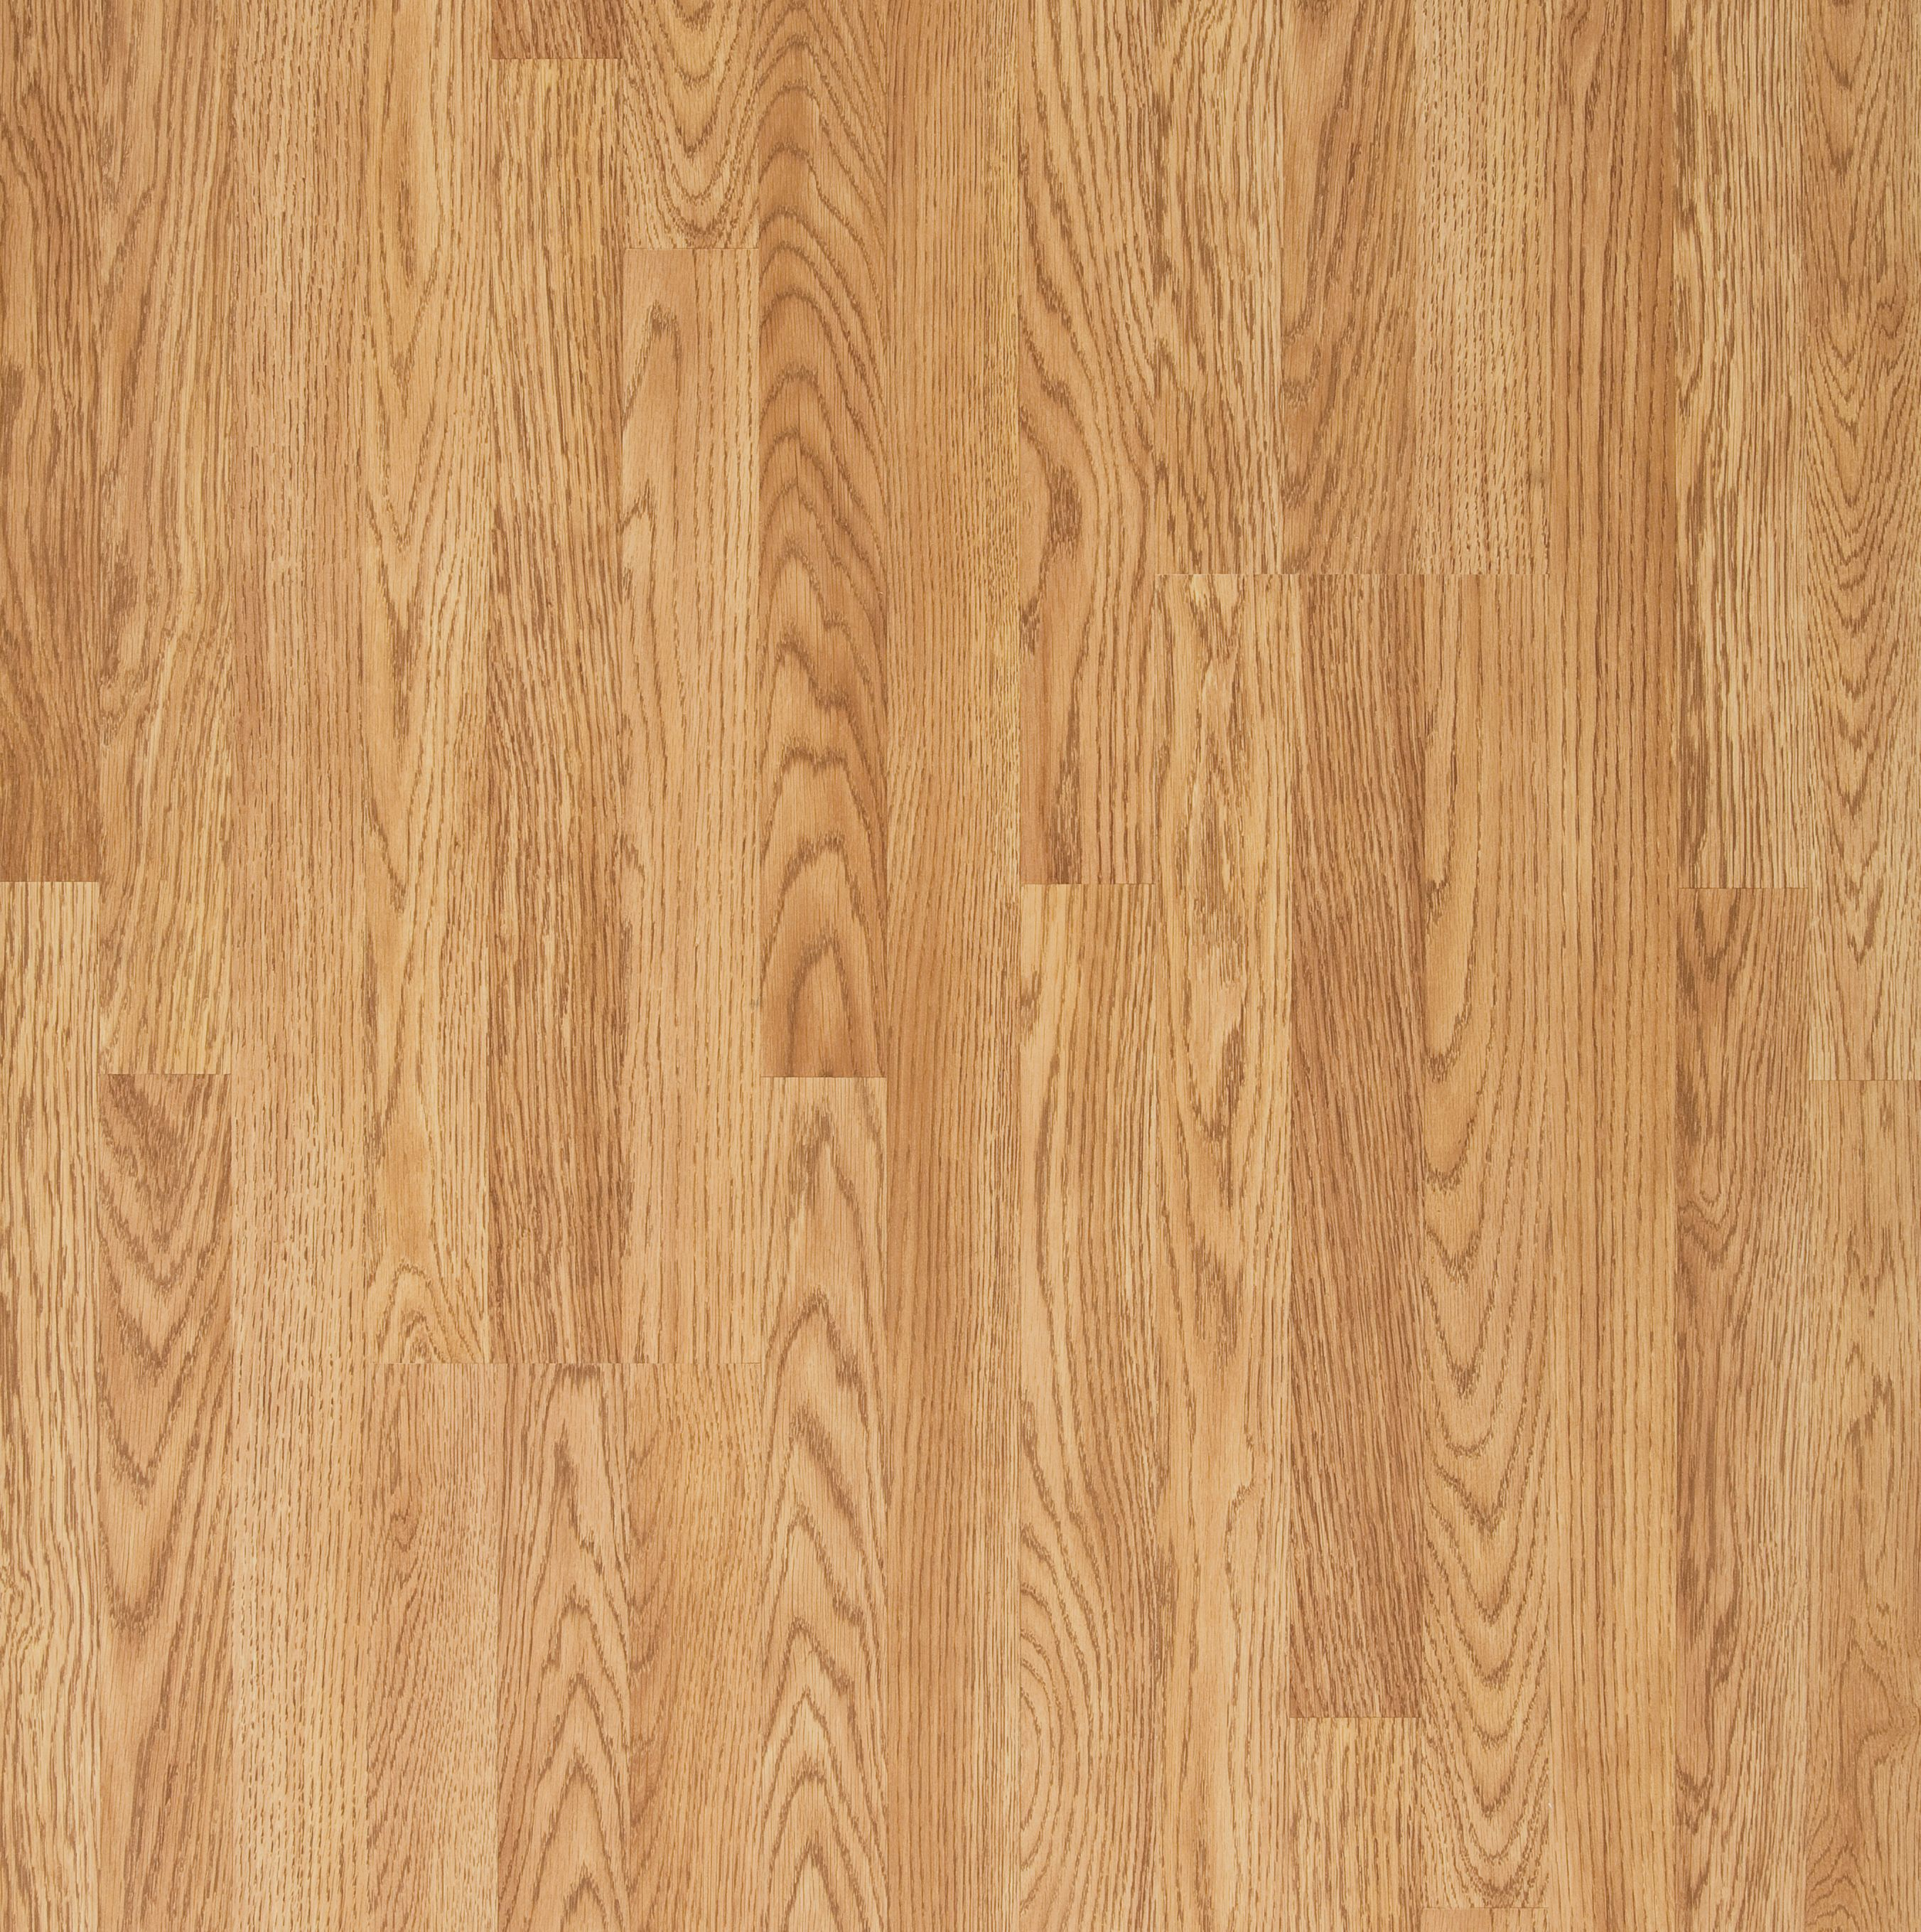 Royal Oak Pergo Xp Laminate Flooring